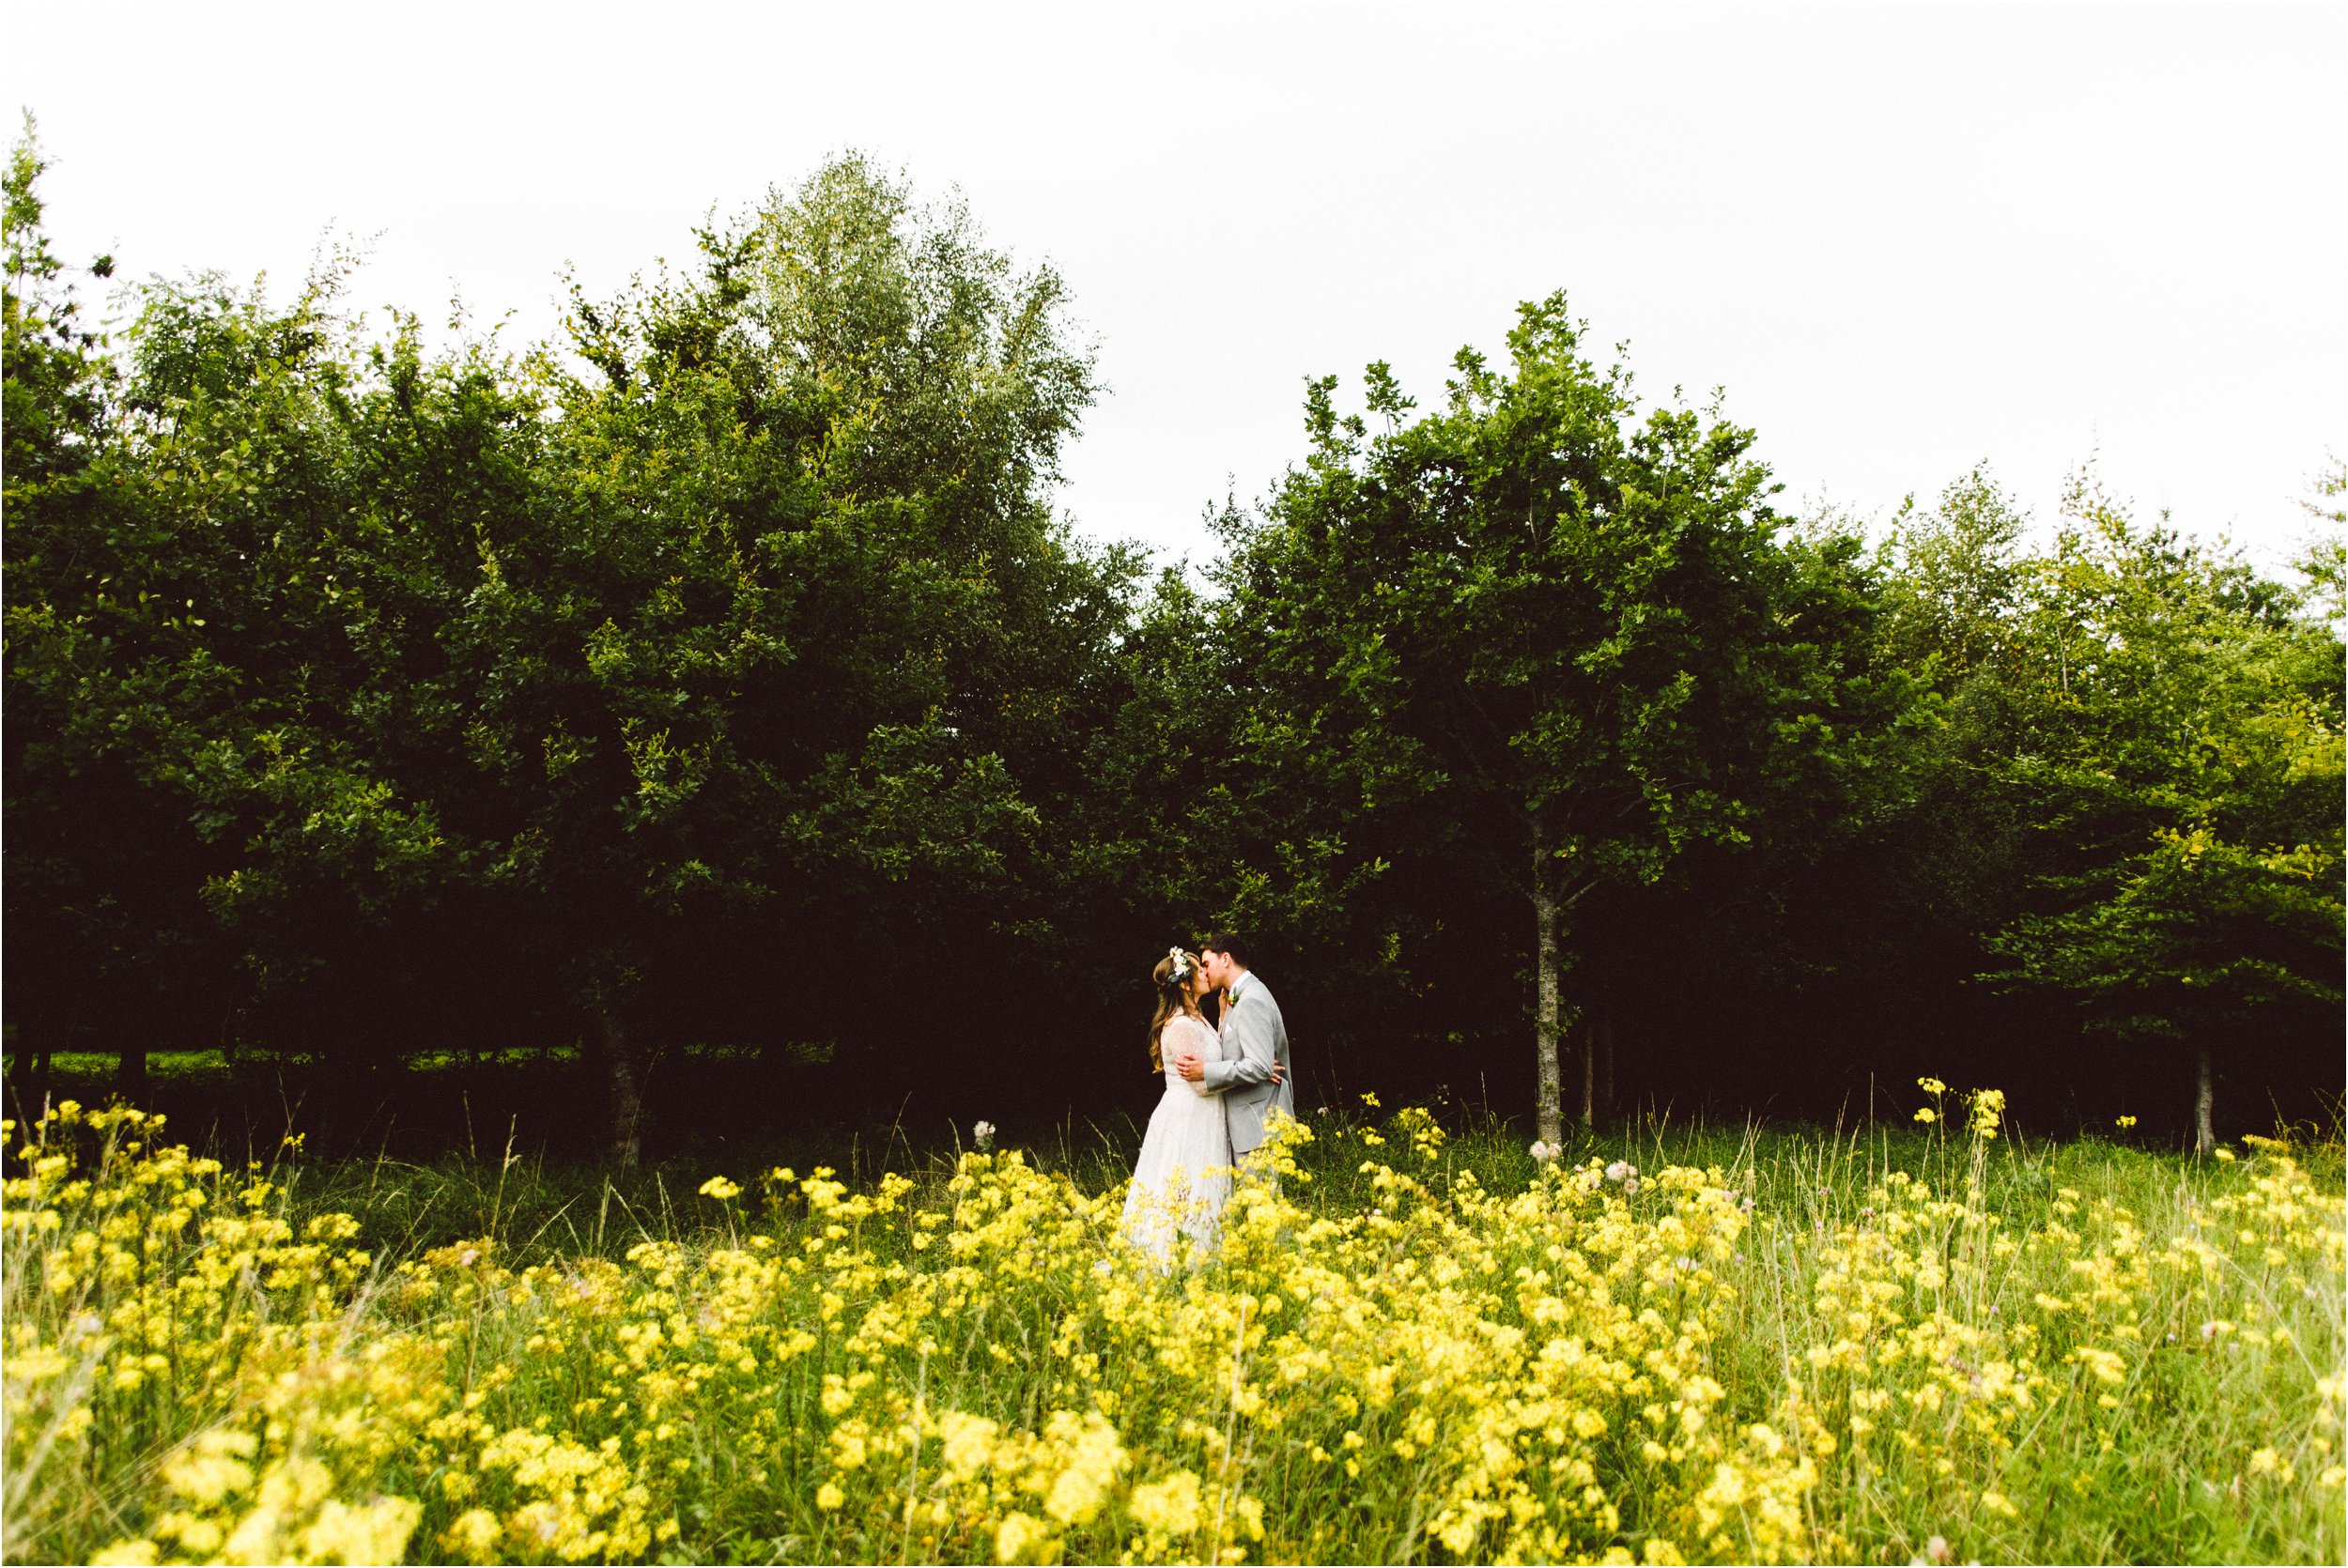 Gloucestershire outdoor wedding photographer_0087.jpg